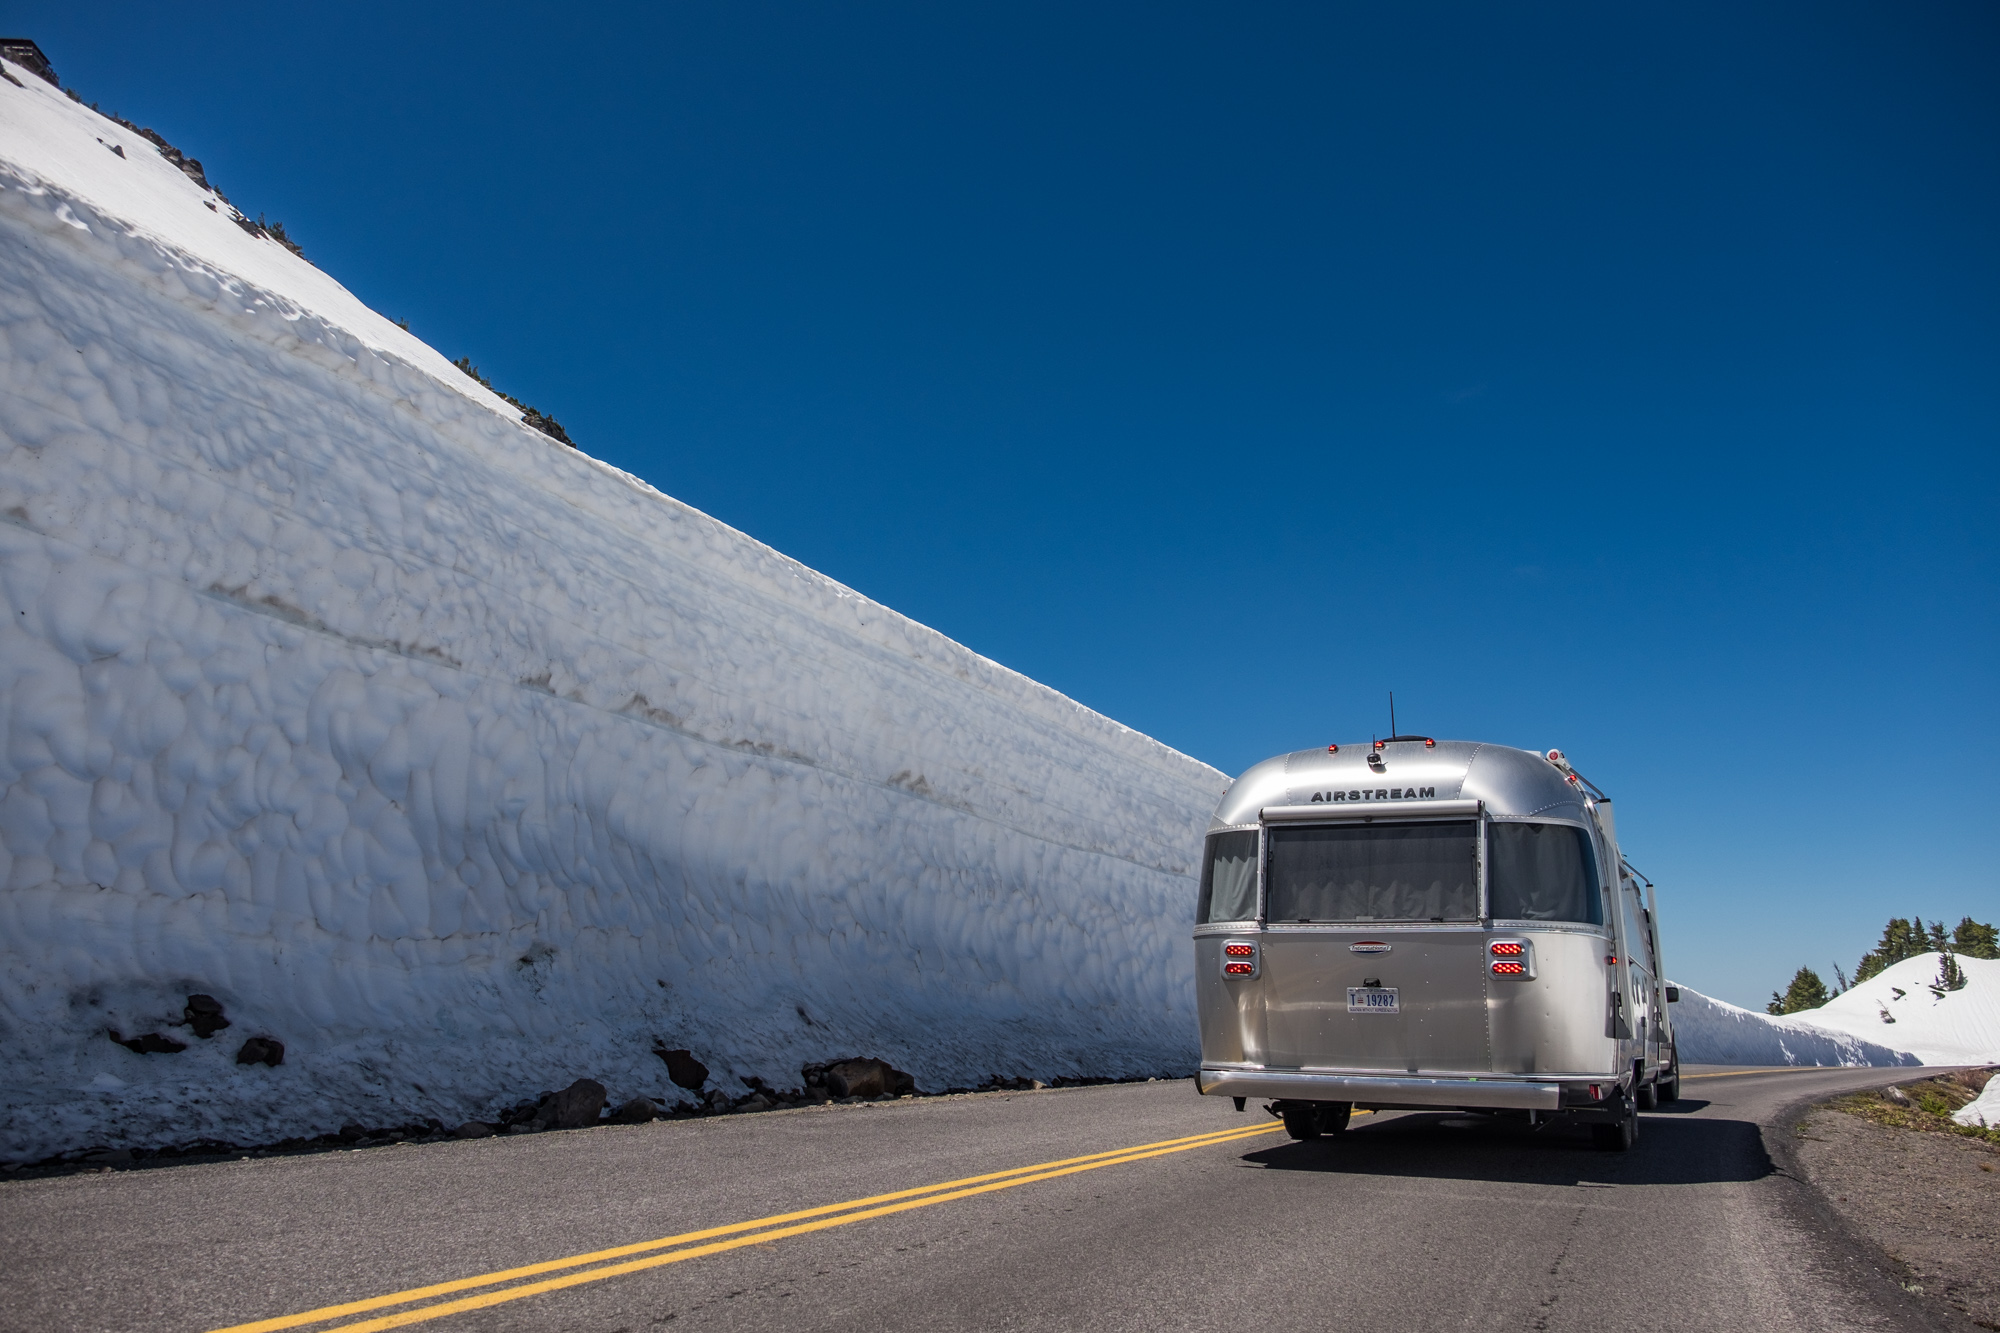 The snow banks were higher than Wally in some places!